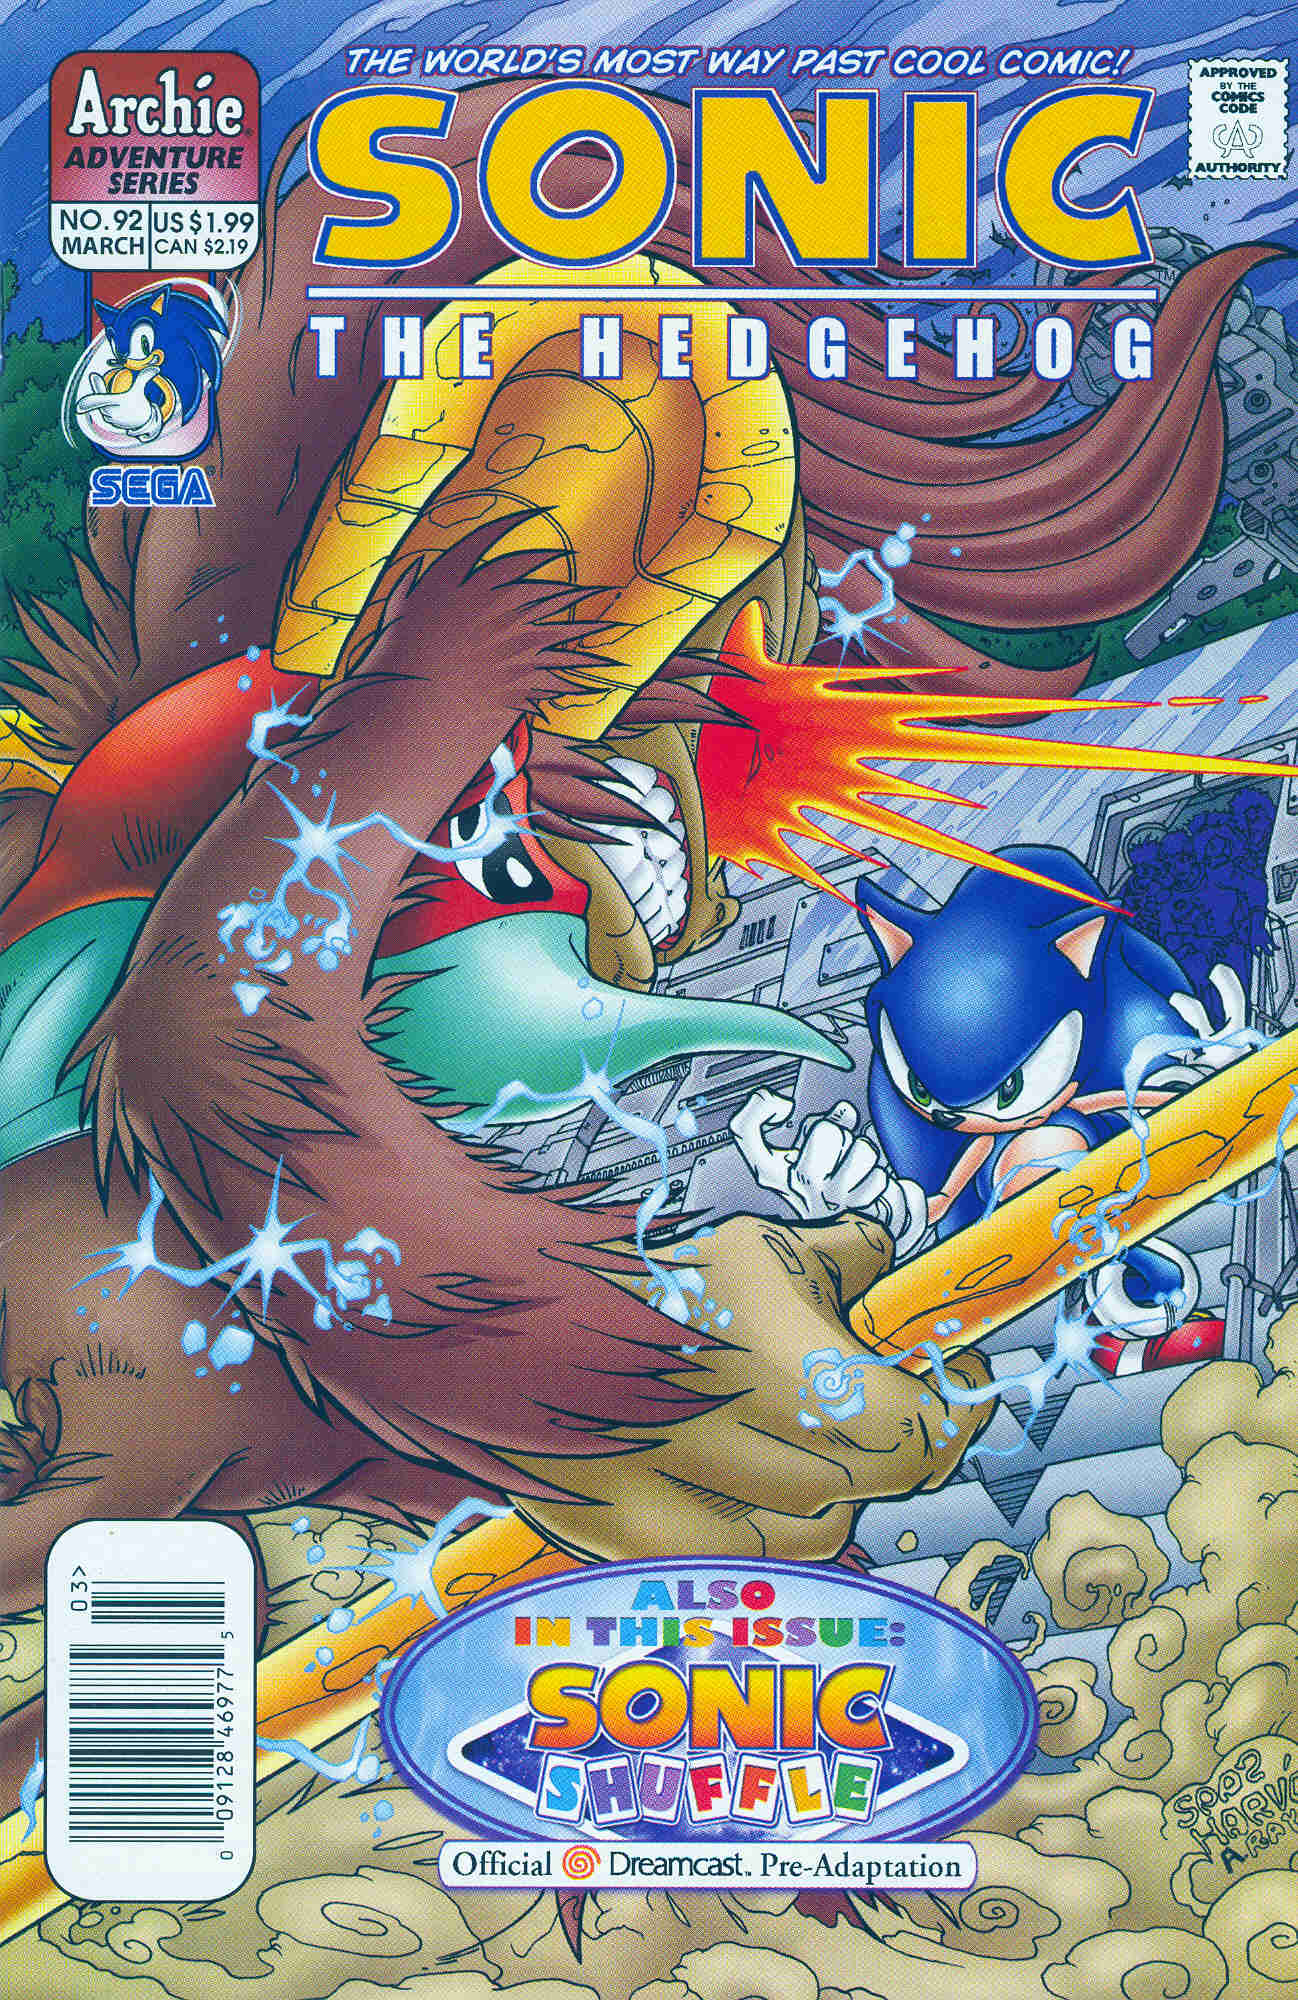 Sonic - Archie Adventure Series March 2001 Comic cover page